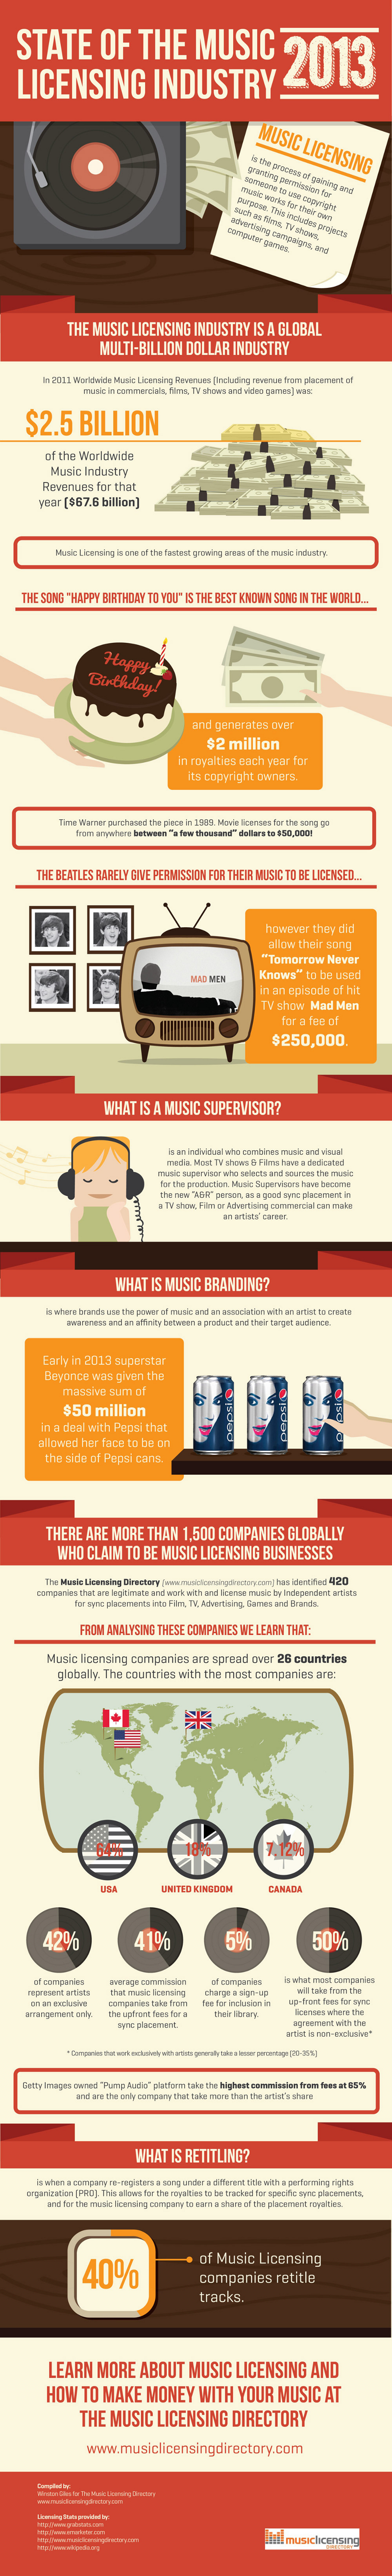 Music Licensing Facts